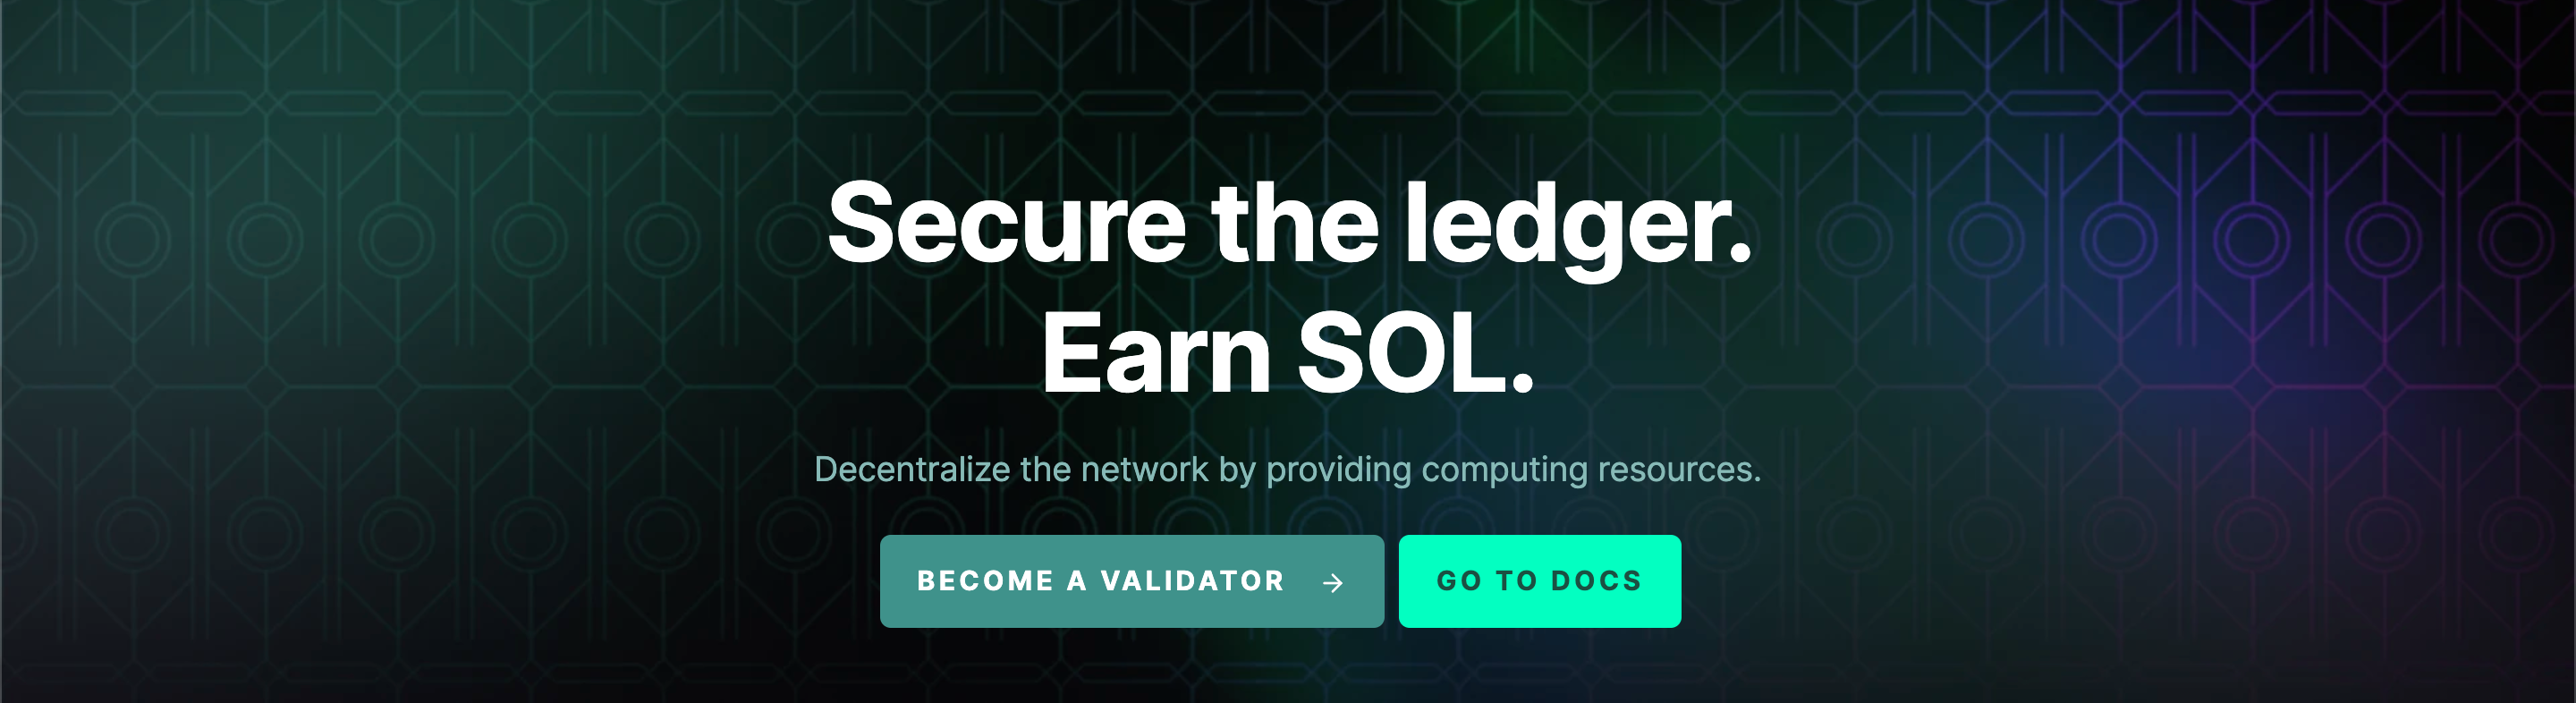 Solana SOL - Become a validator